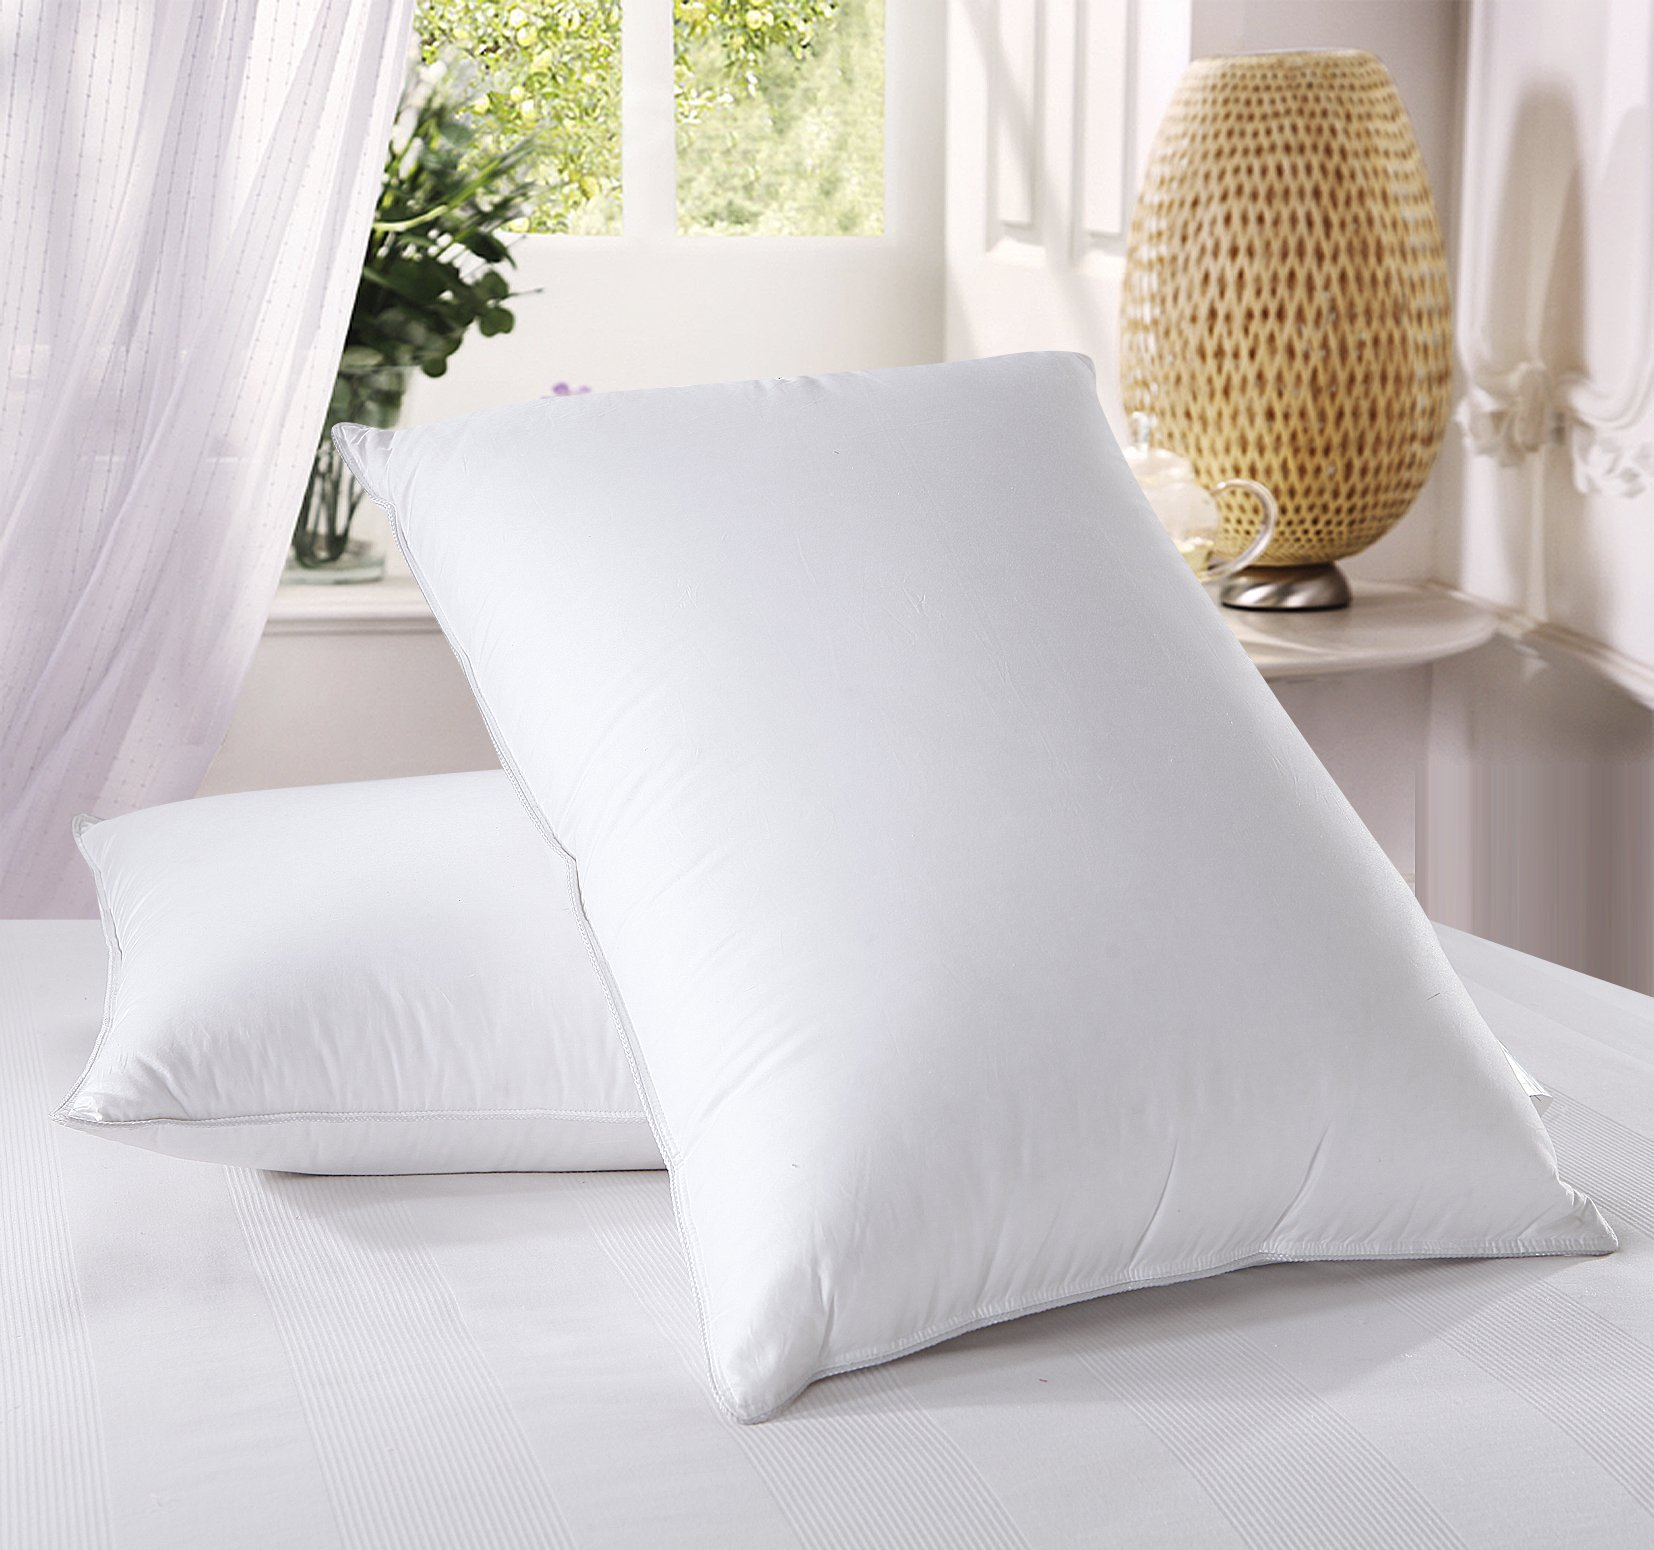 Soft Goose Down Pillow - 500 Thread Count Cotton Shell, Standard / Queen Size, Soft, 1 Single Pillow by Royal Hotel (Image #1)